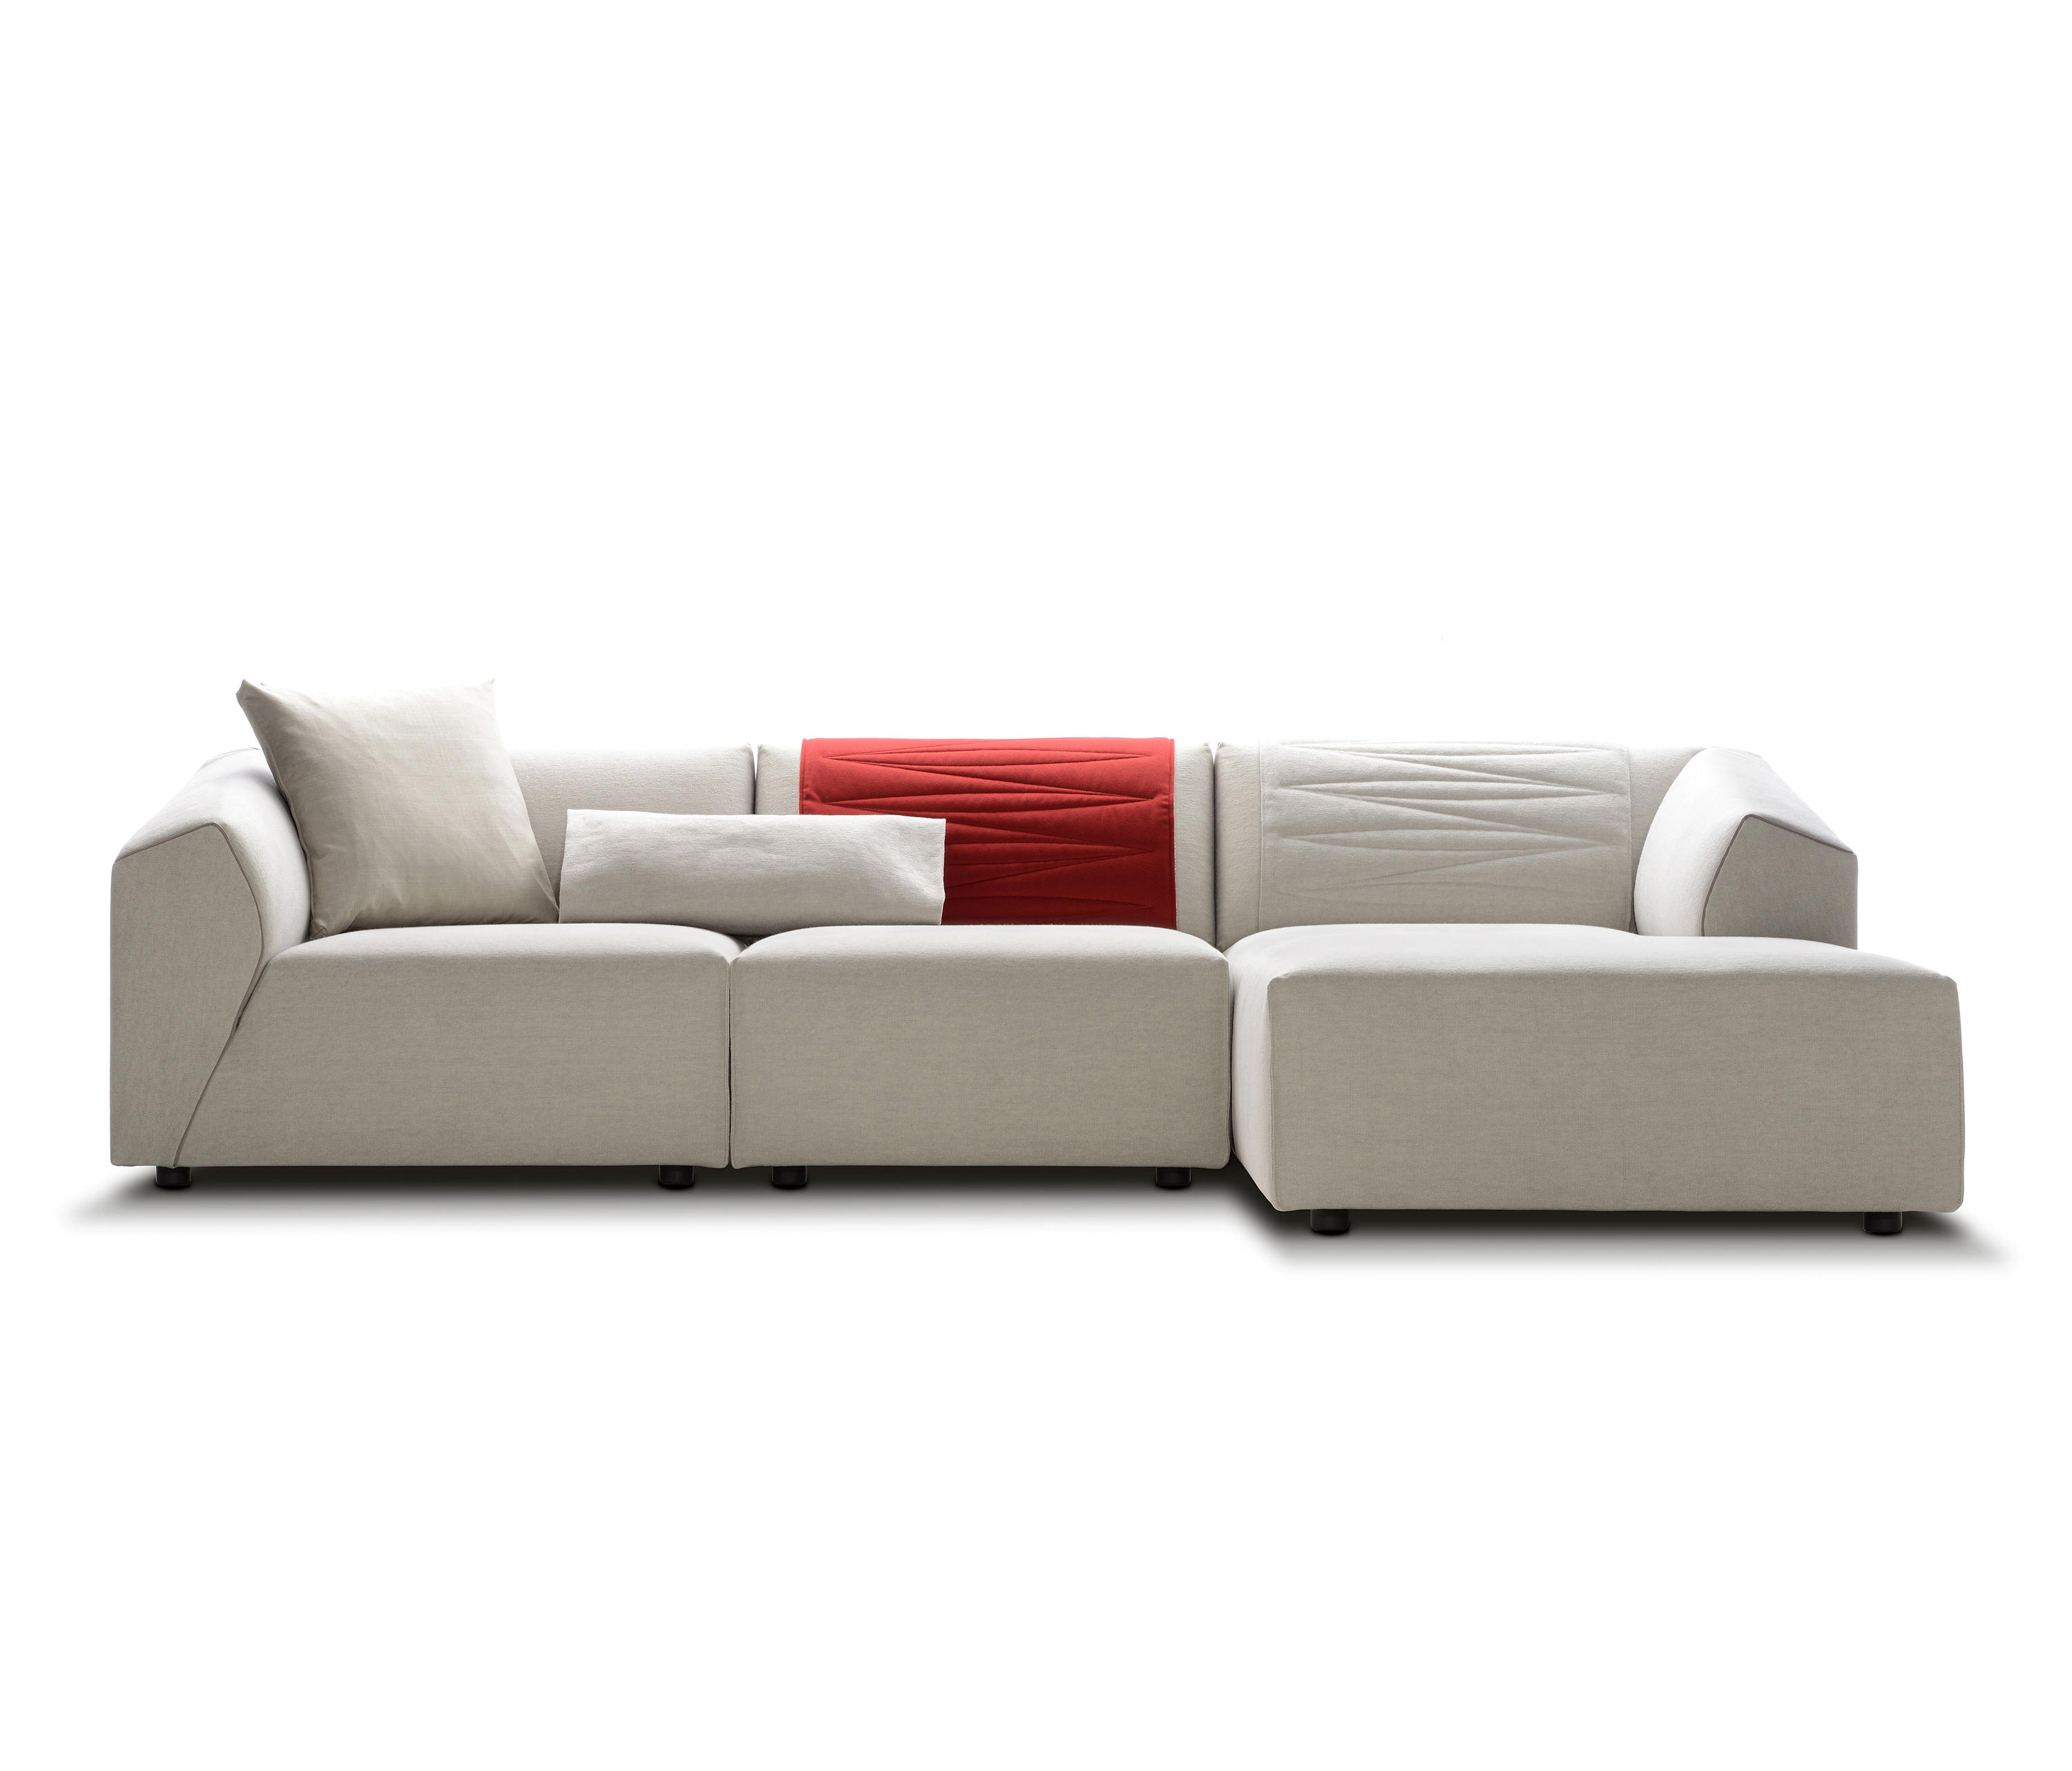 THEA - Sofas from MDF Italia | Architonic